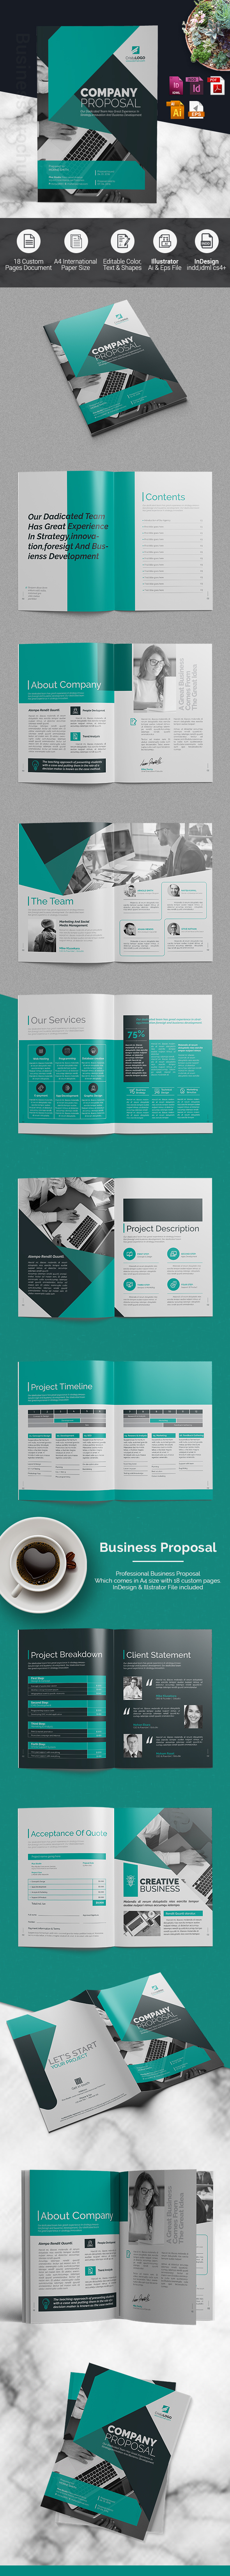 Business Proposal Indesign Template On Behance